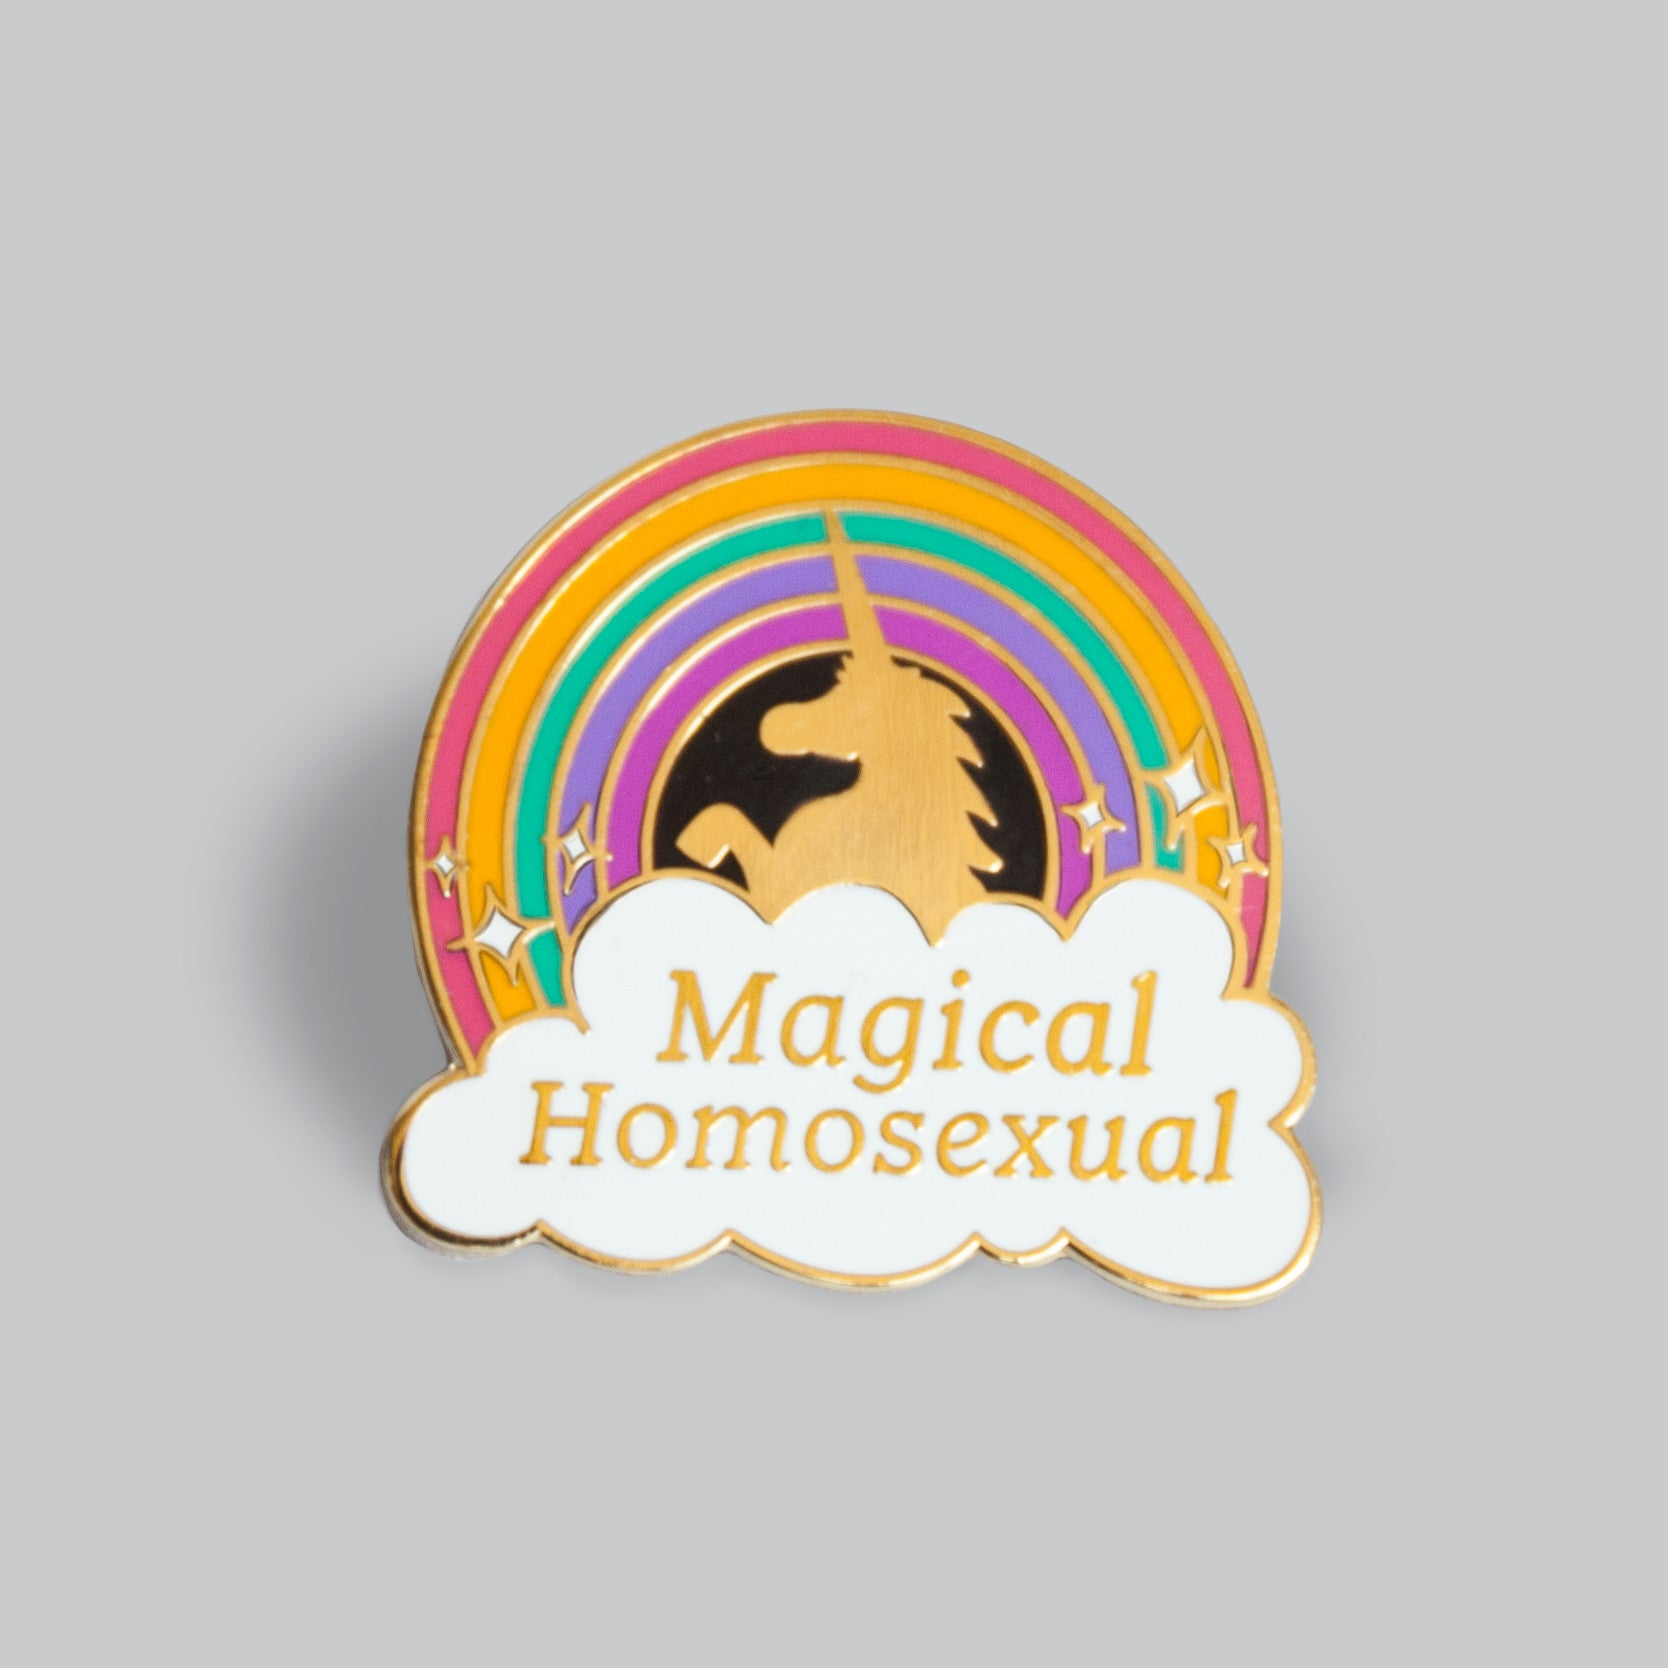 Magical Homosexual Pin - GAYPIN'